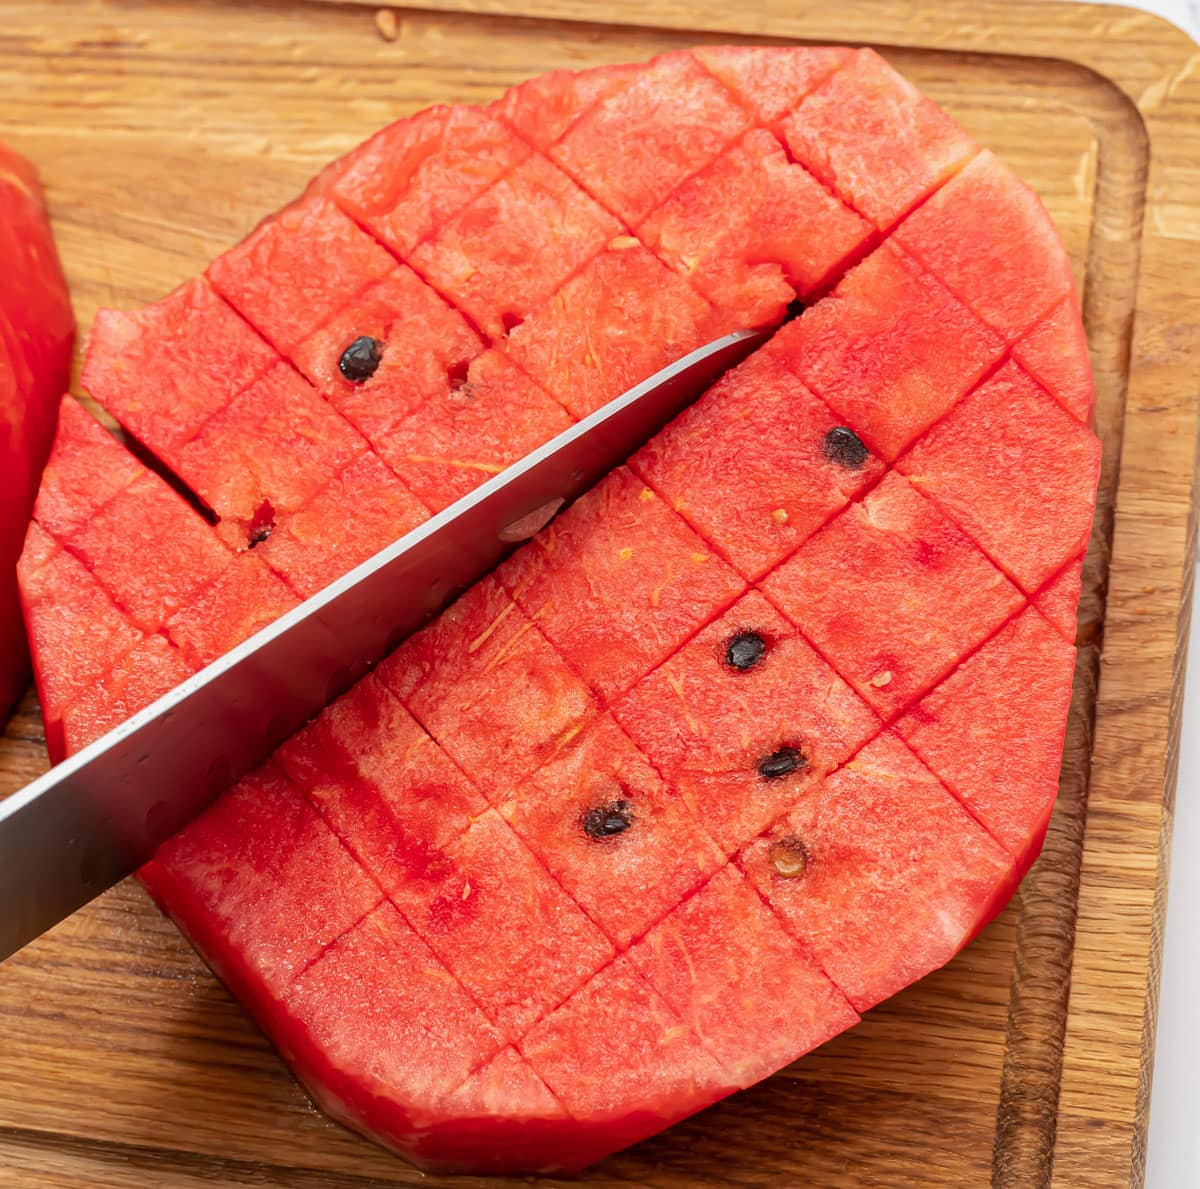 A watermelon being cut into cubes